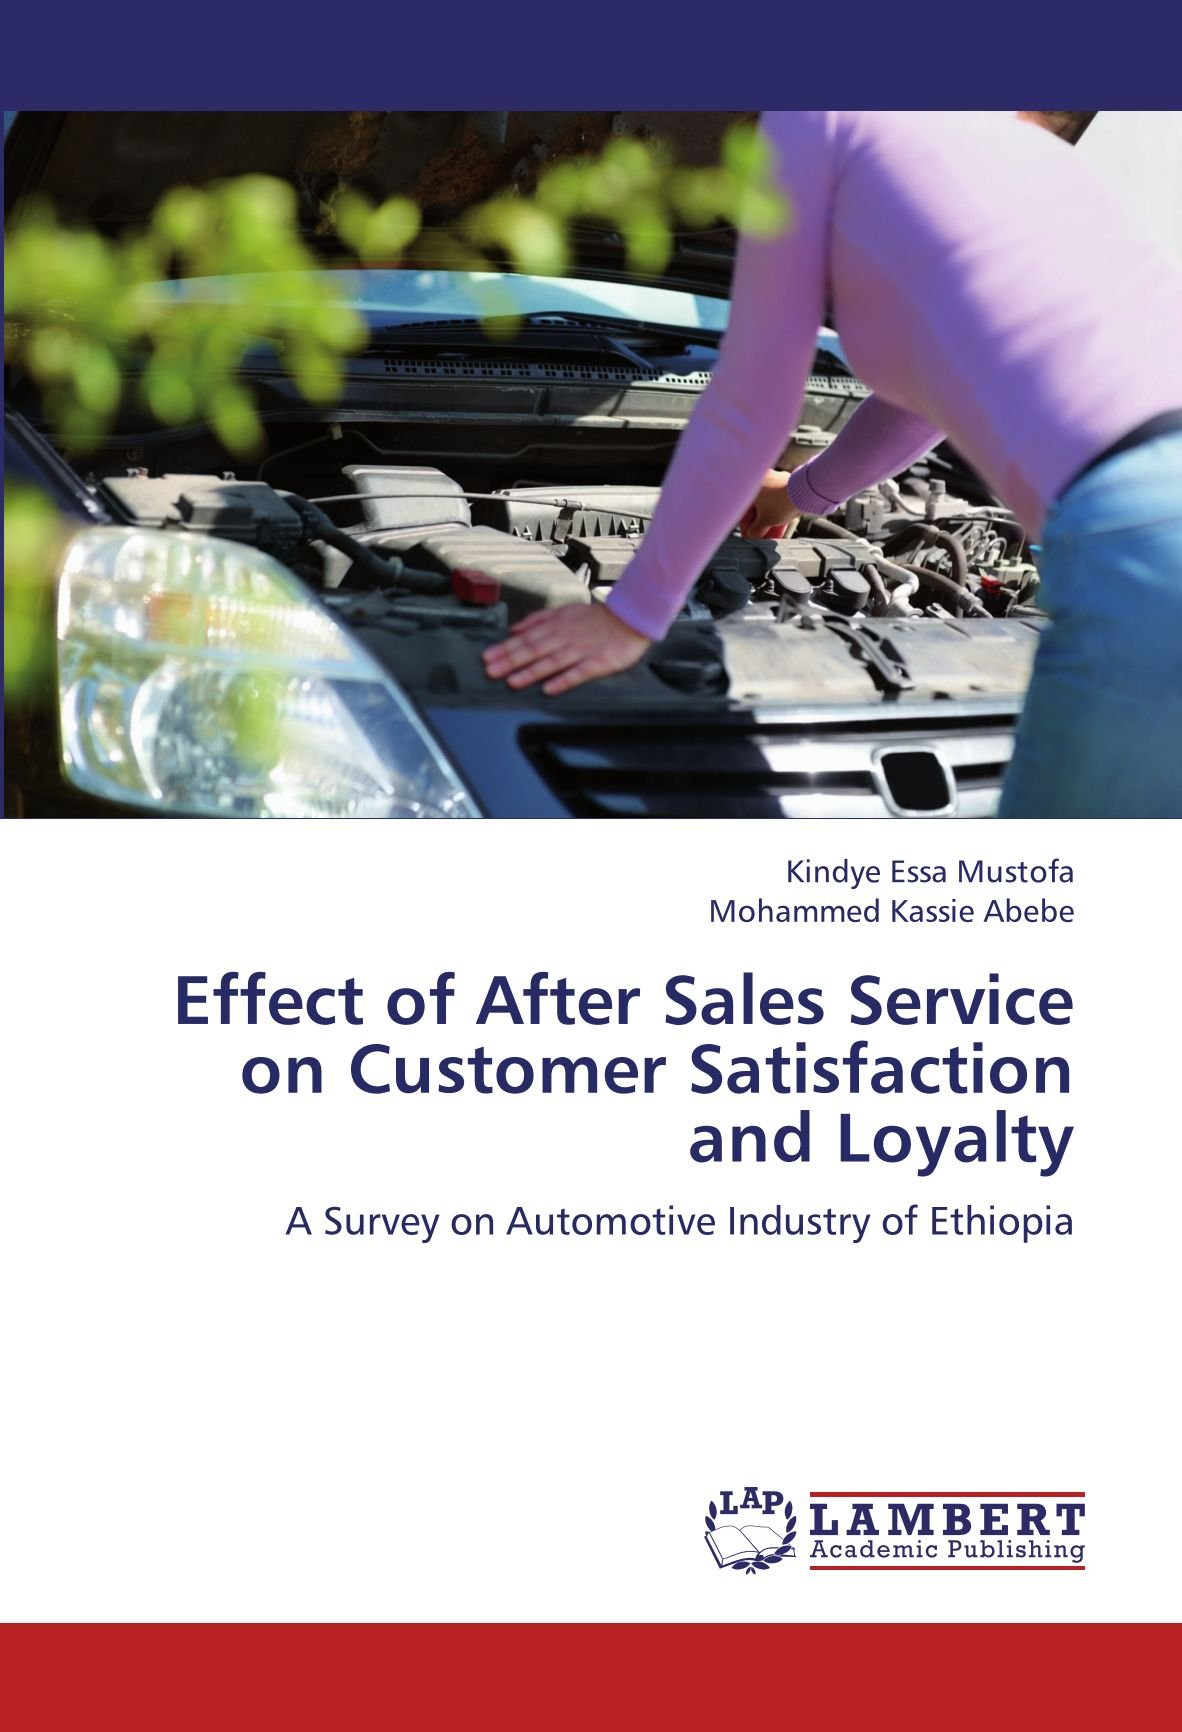 Effect of After Sales Service on Customer Satisfaction and Loyalty: A Survey on Automotive Industry of Ethiopia